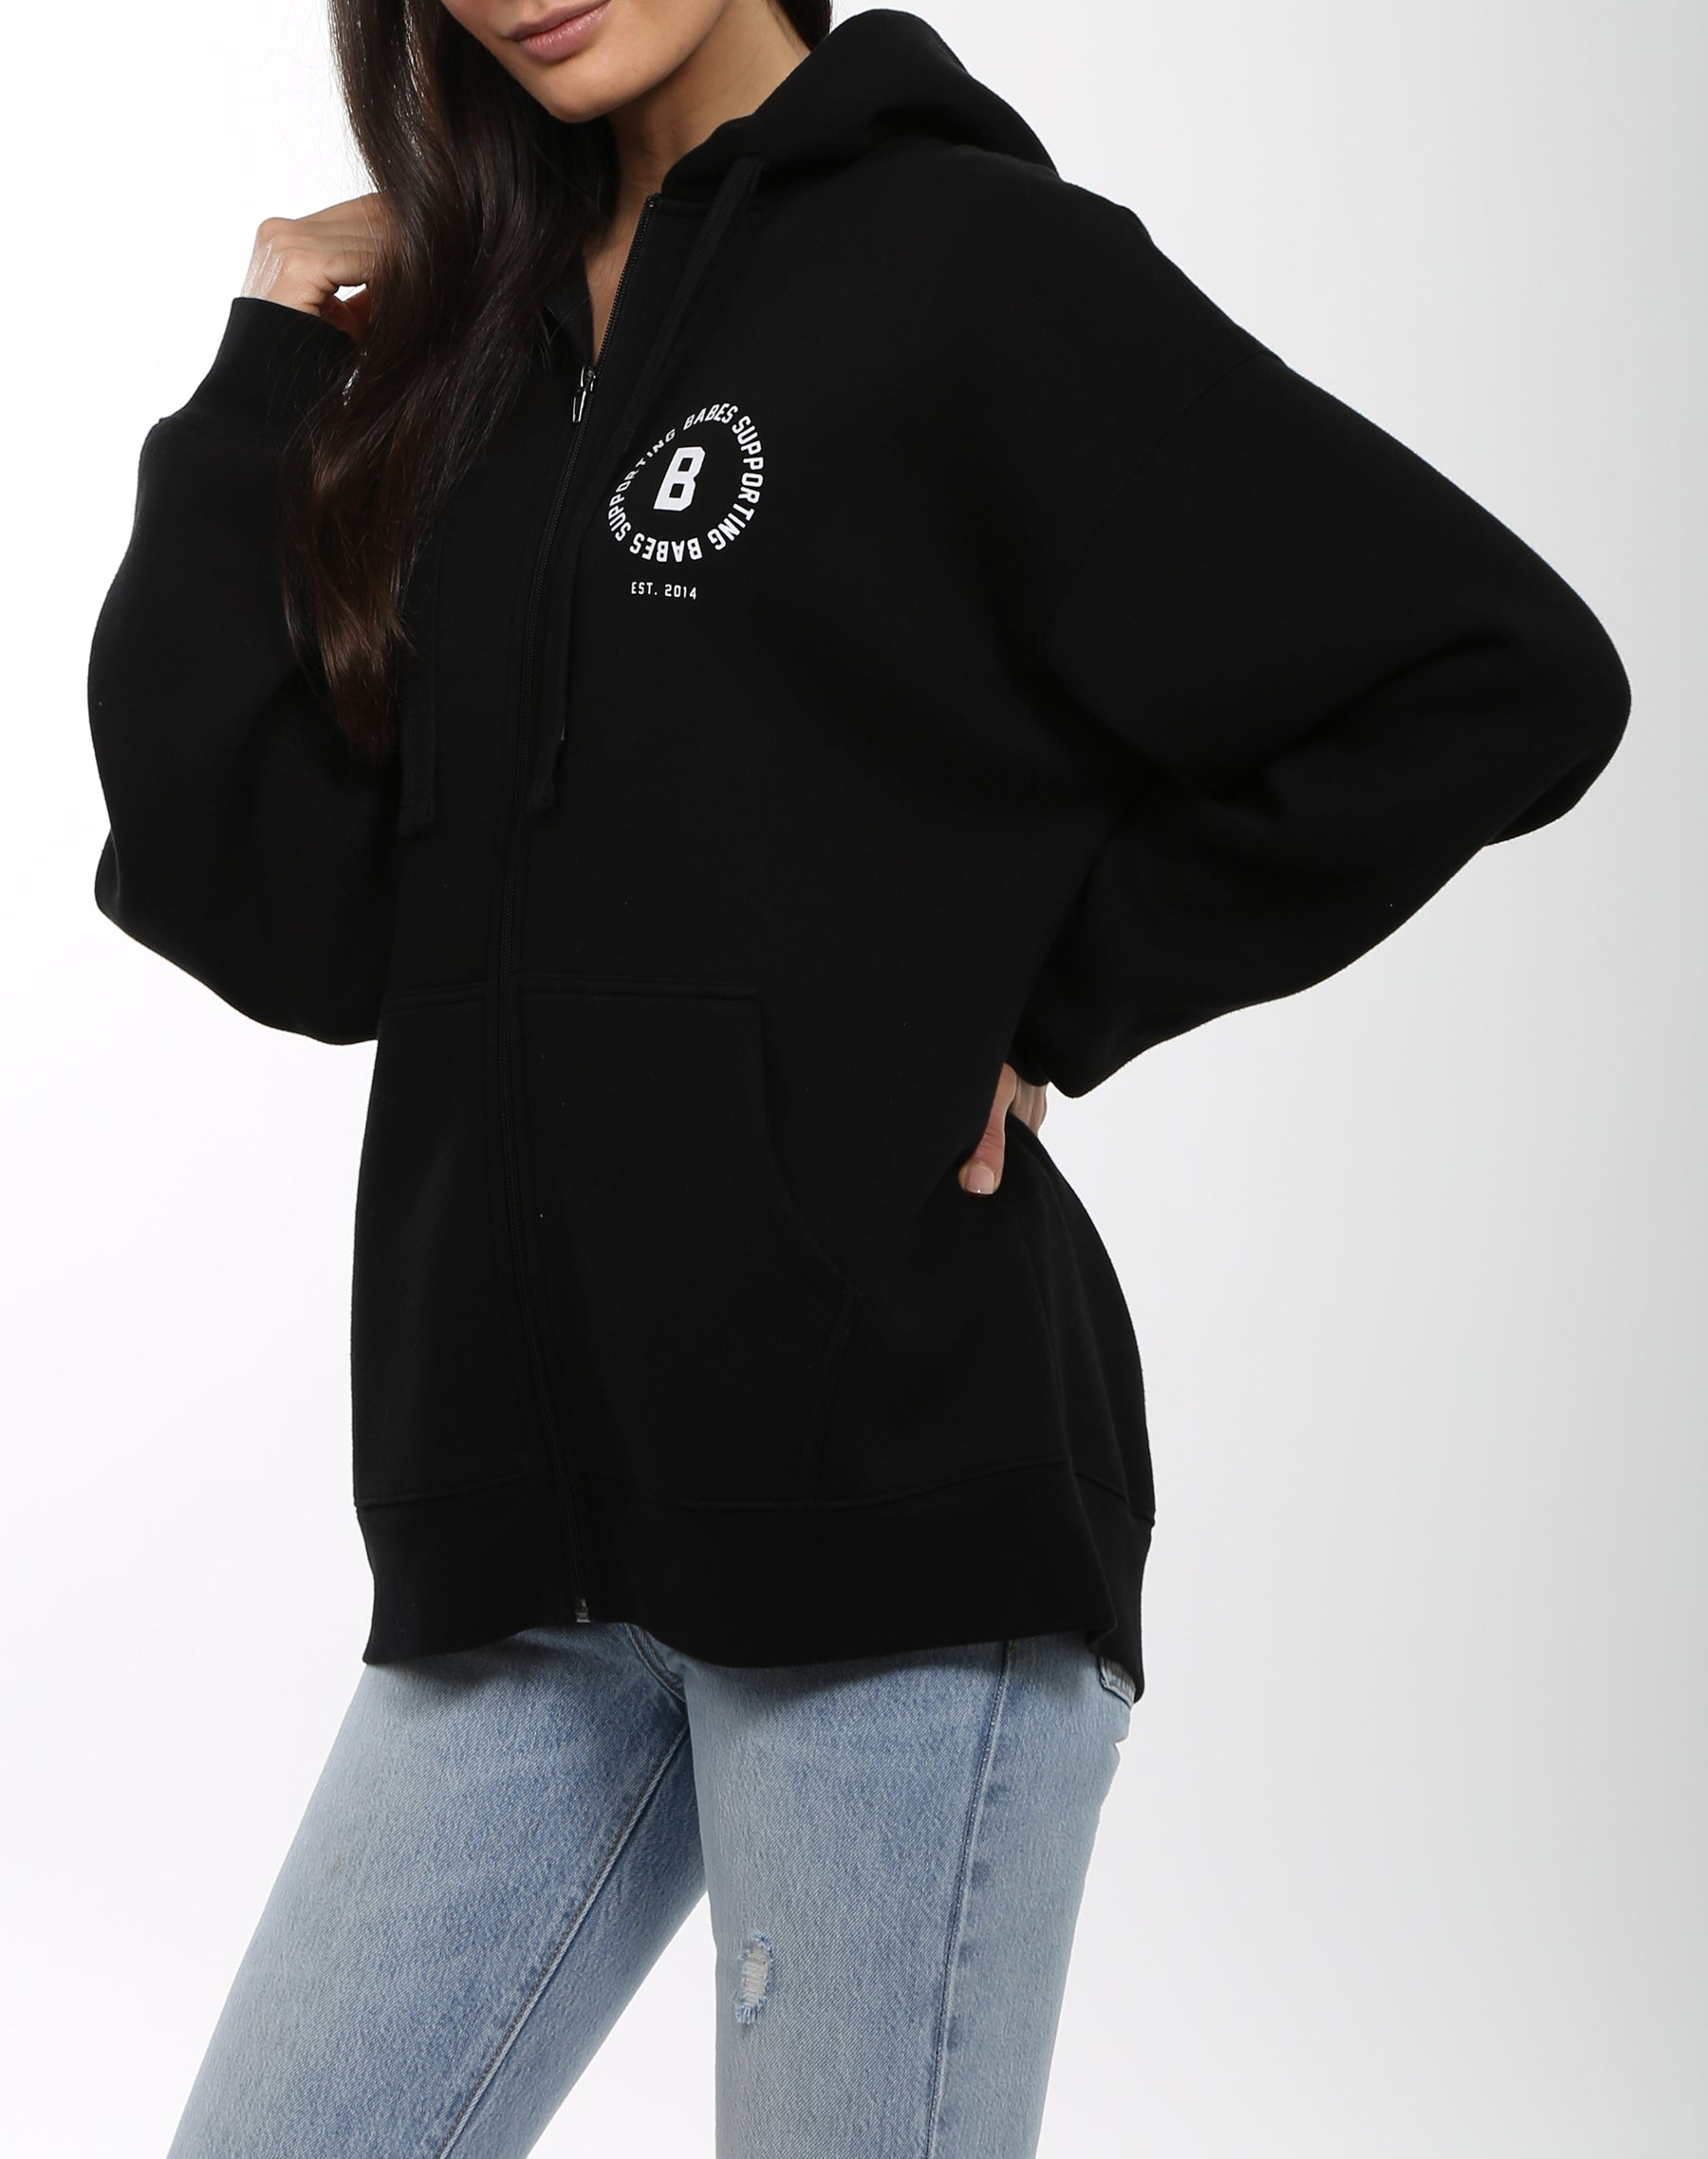 Side photo of the Babes Supporting Babes big sister zip up hoodie in black by Brunette the Label.